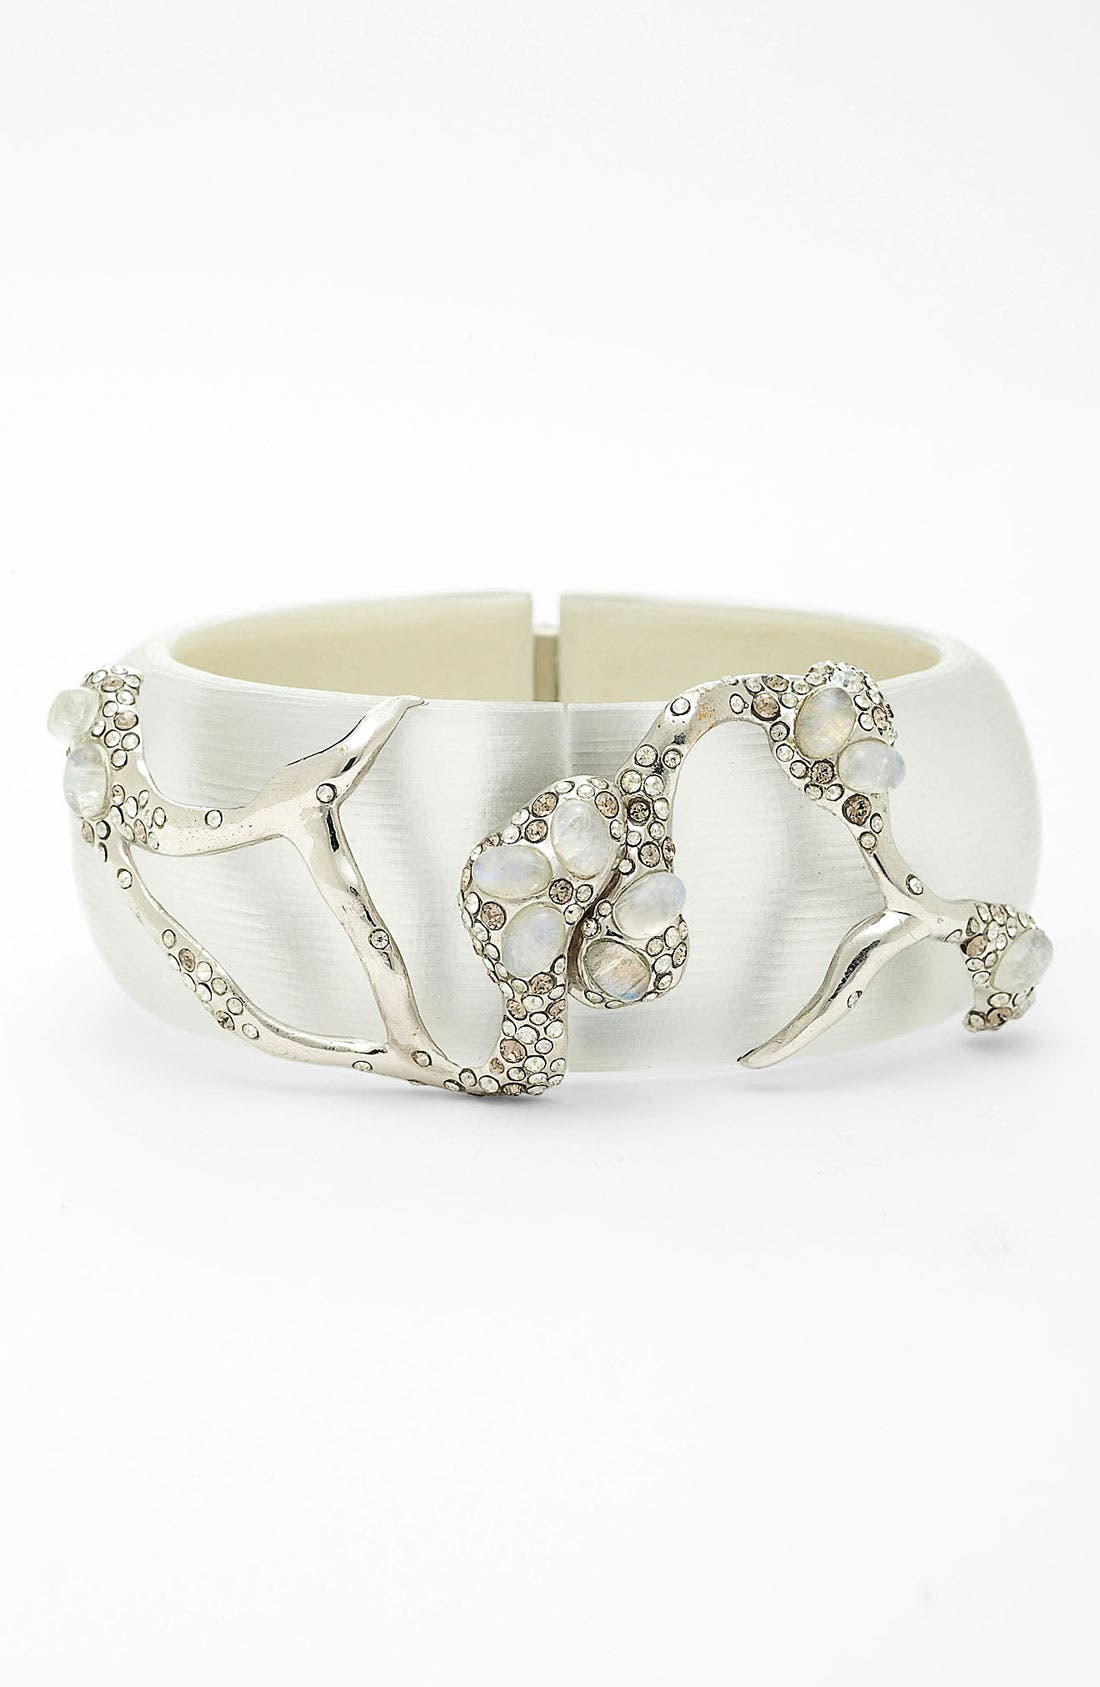 Alternate Image 1 Selected - Alexis Bittar 'Modernist - Embraced' Hinged Bracelet (Nordstrom Exclusive)